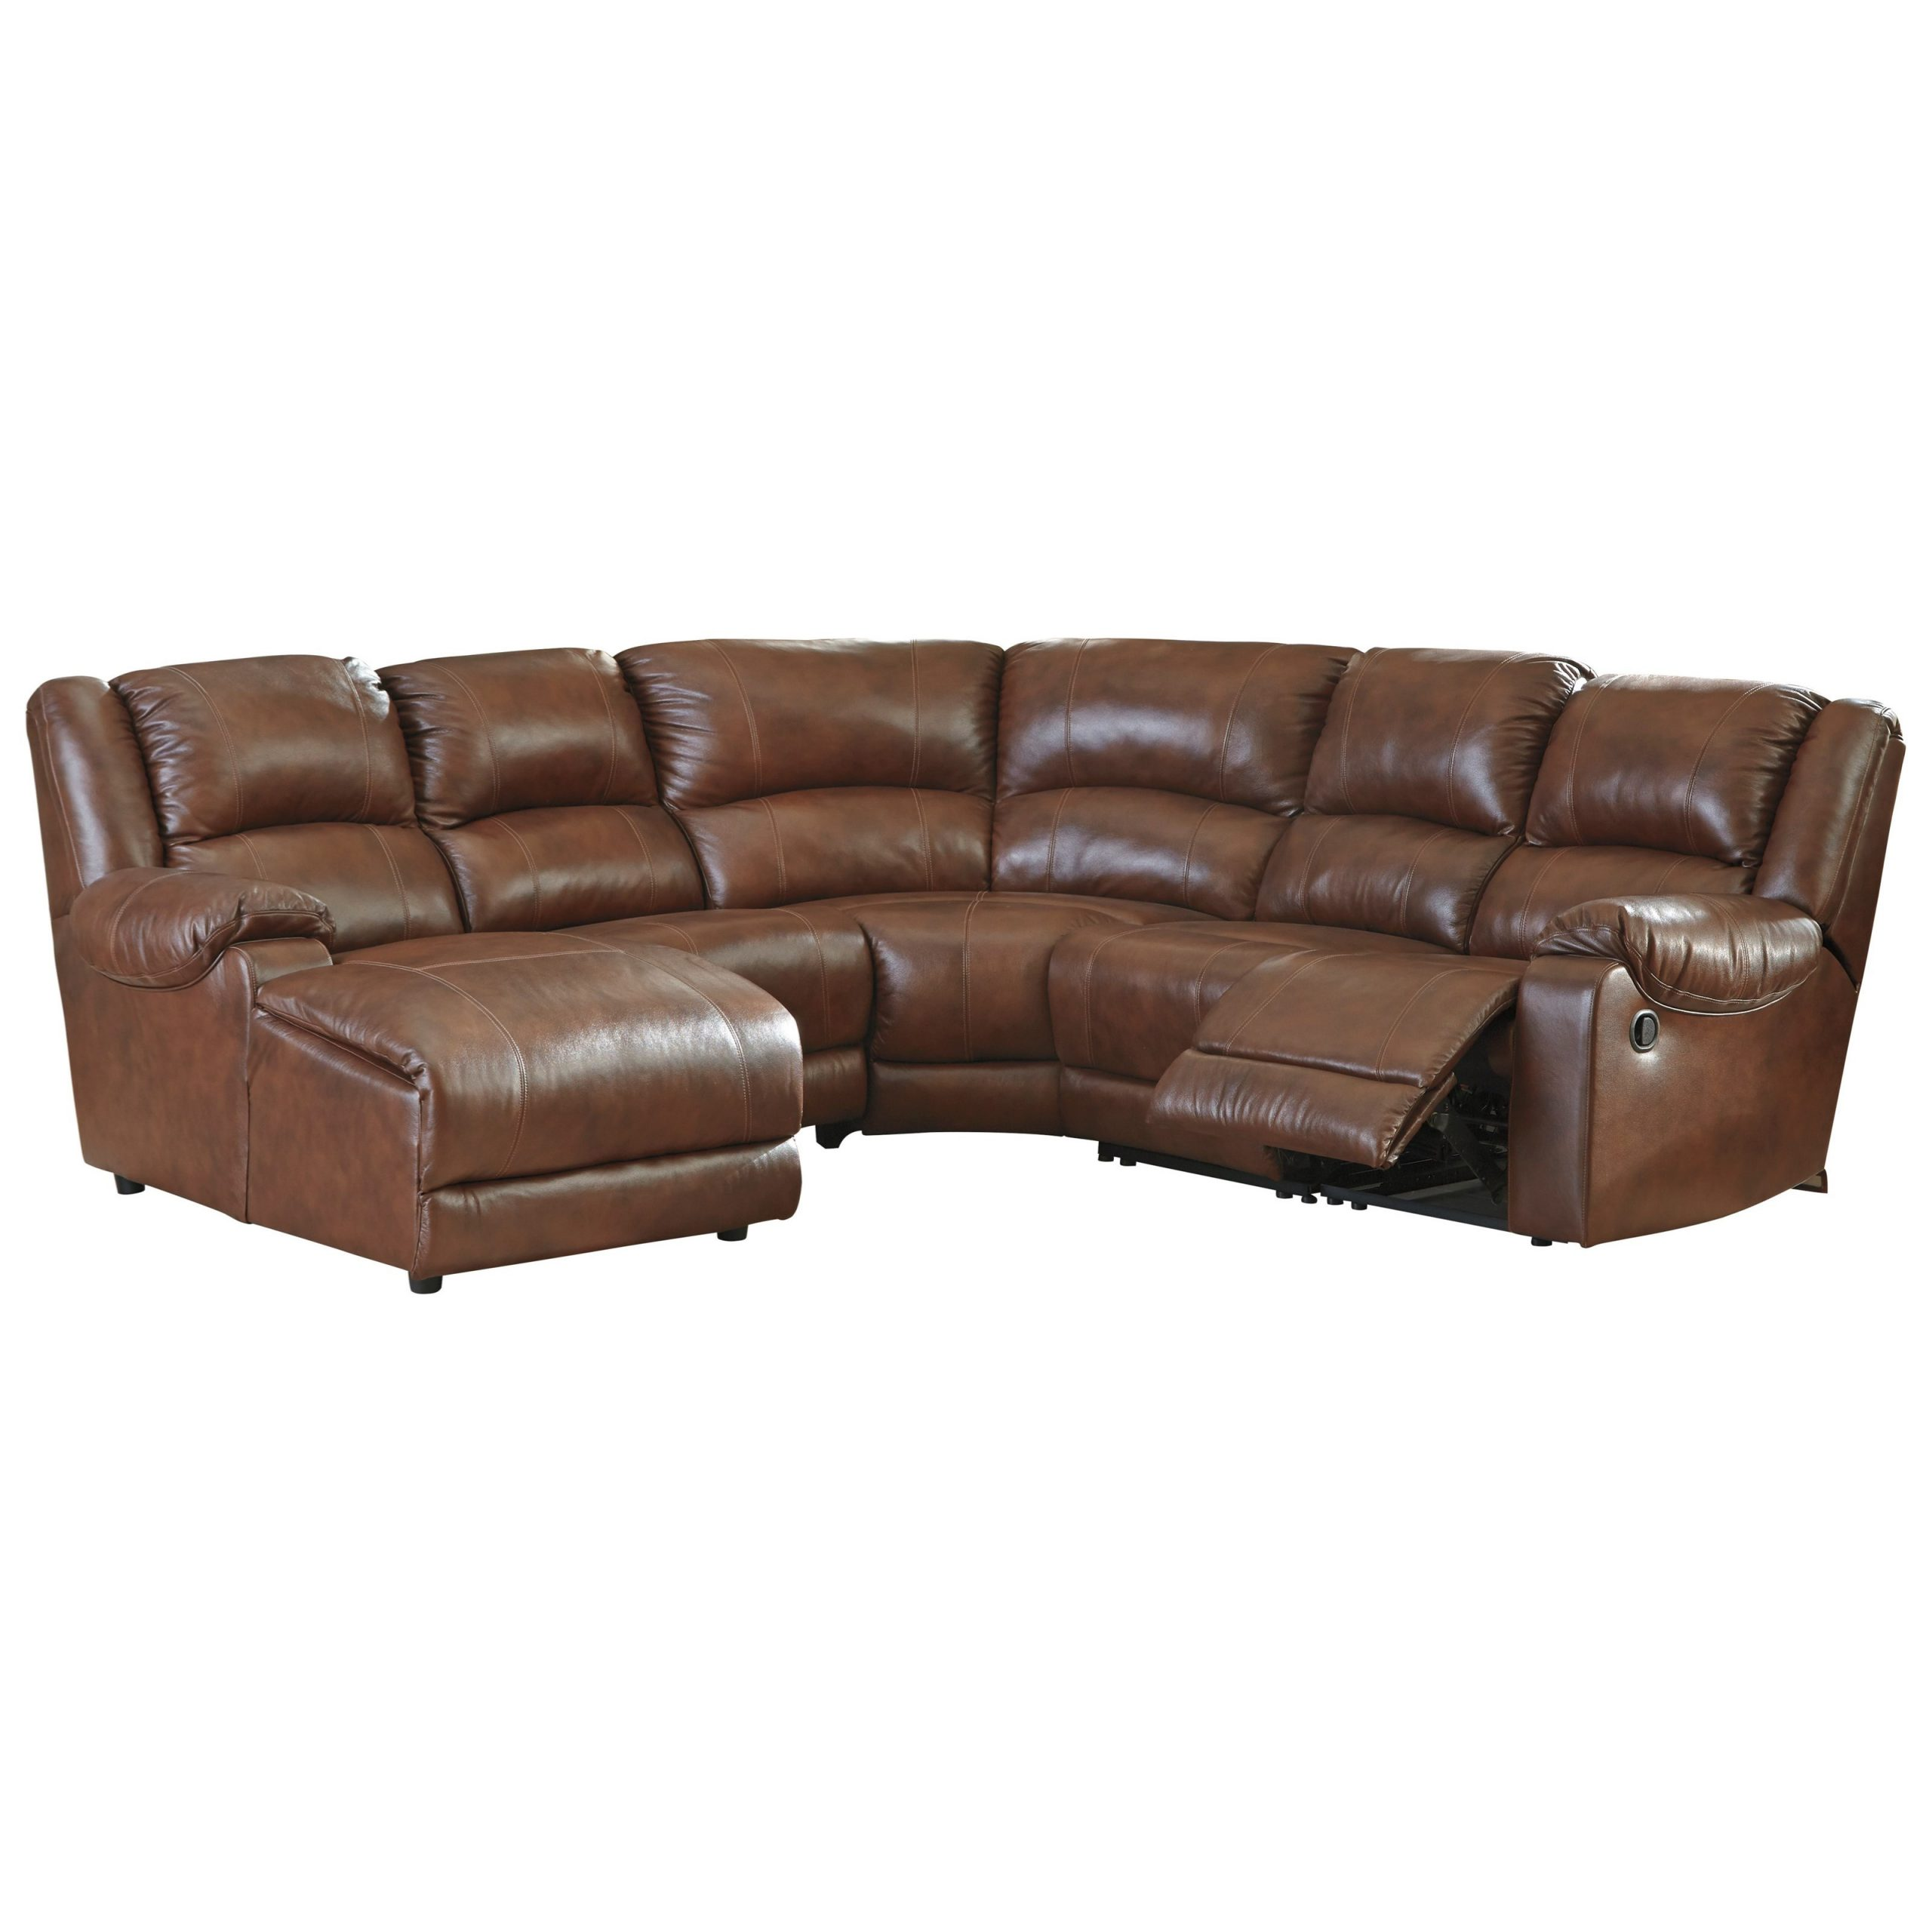 Popular Signature Designashley Billwedge Leather Match For Copenhagen Reclining Sectional Sofas With Right Storage Chaise (View 22 of 25)